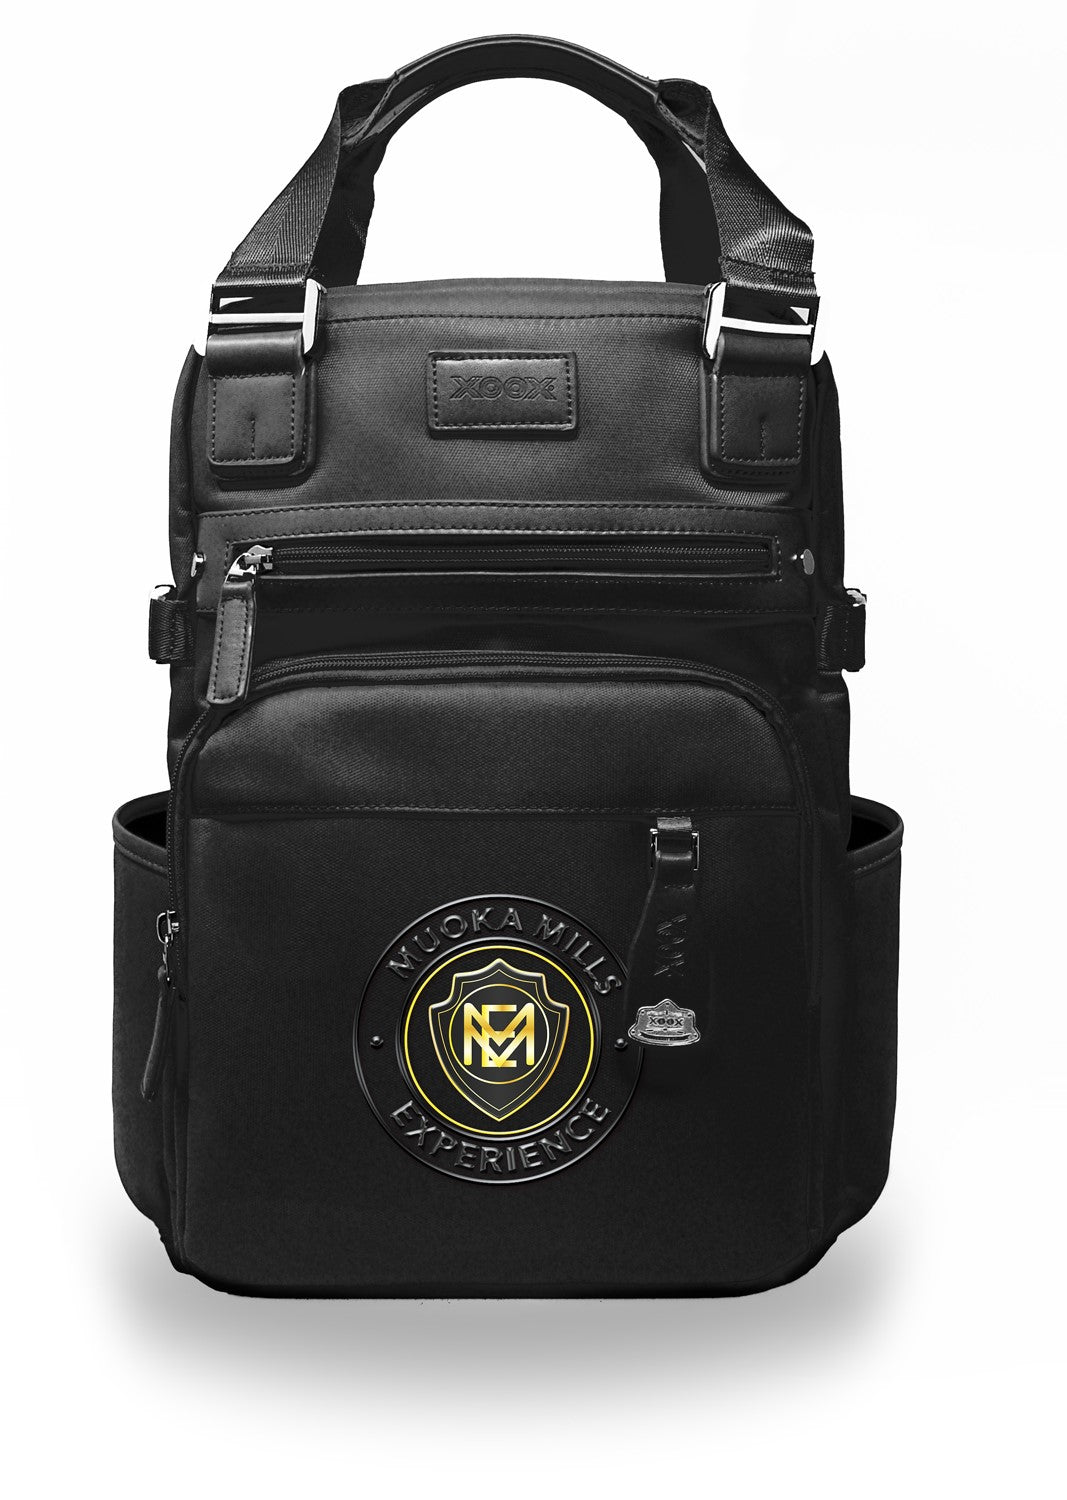 Limited MME black bag